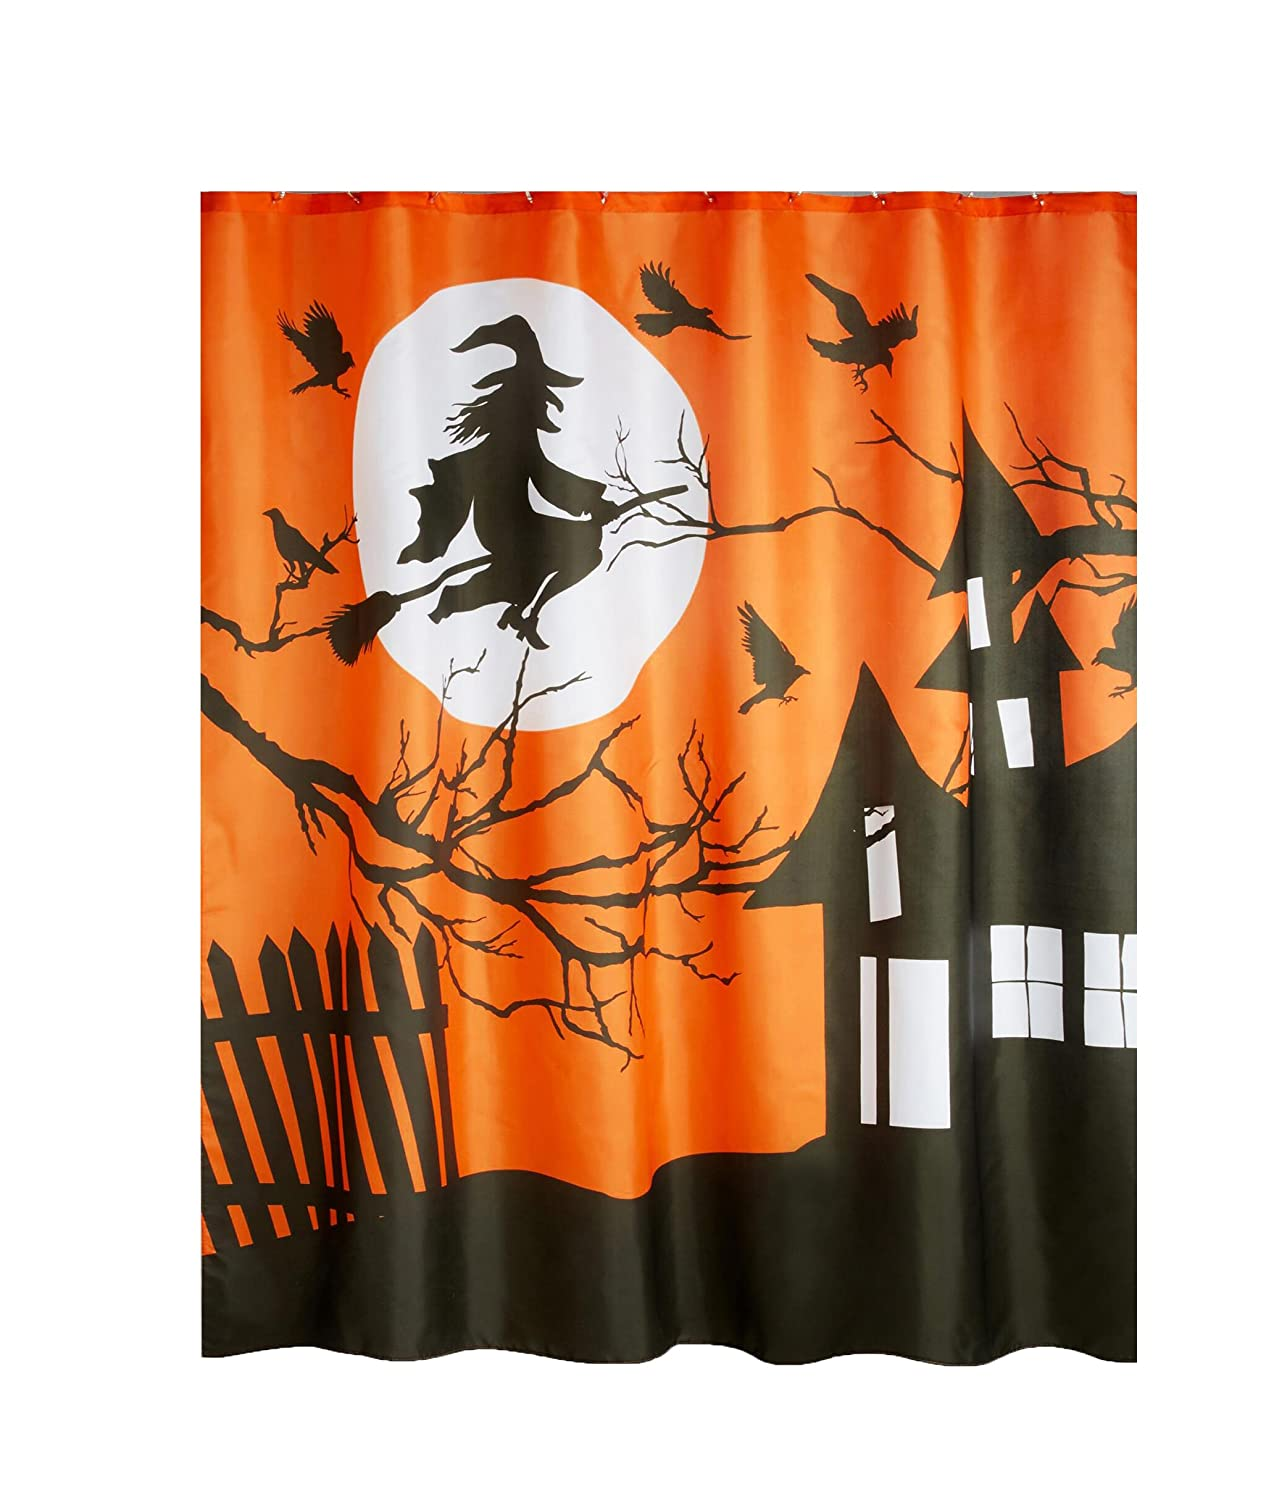 Avanti Linens Halloween Shower Curtain Flying Witch Haunted House Design Polyester Fabric